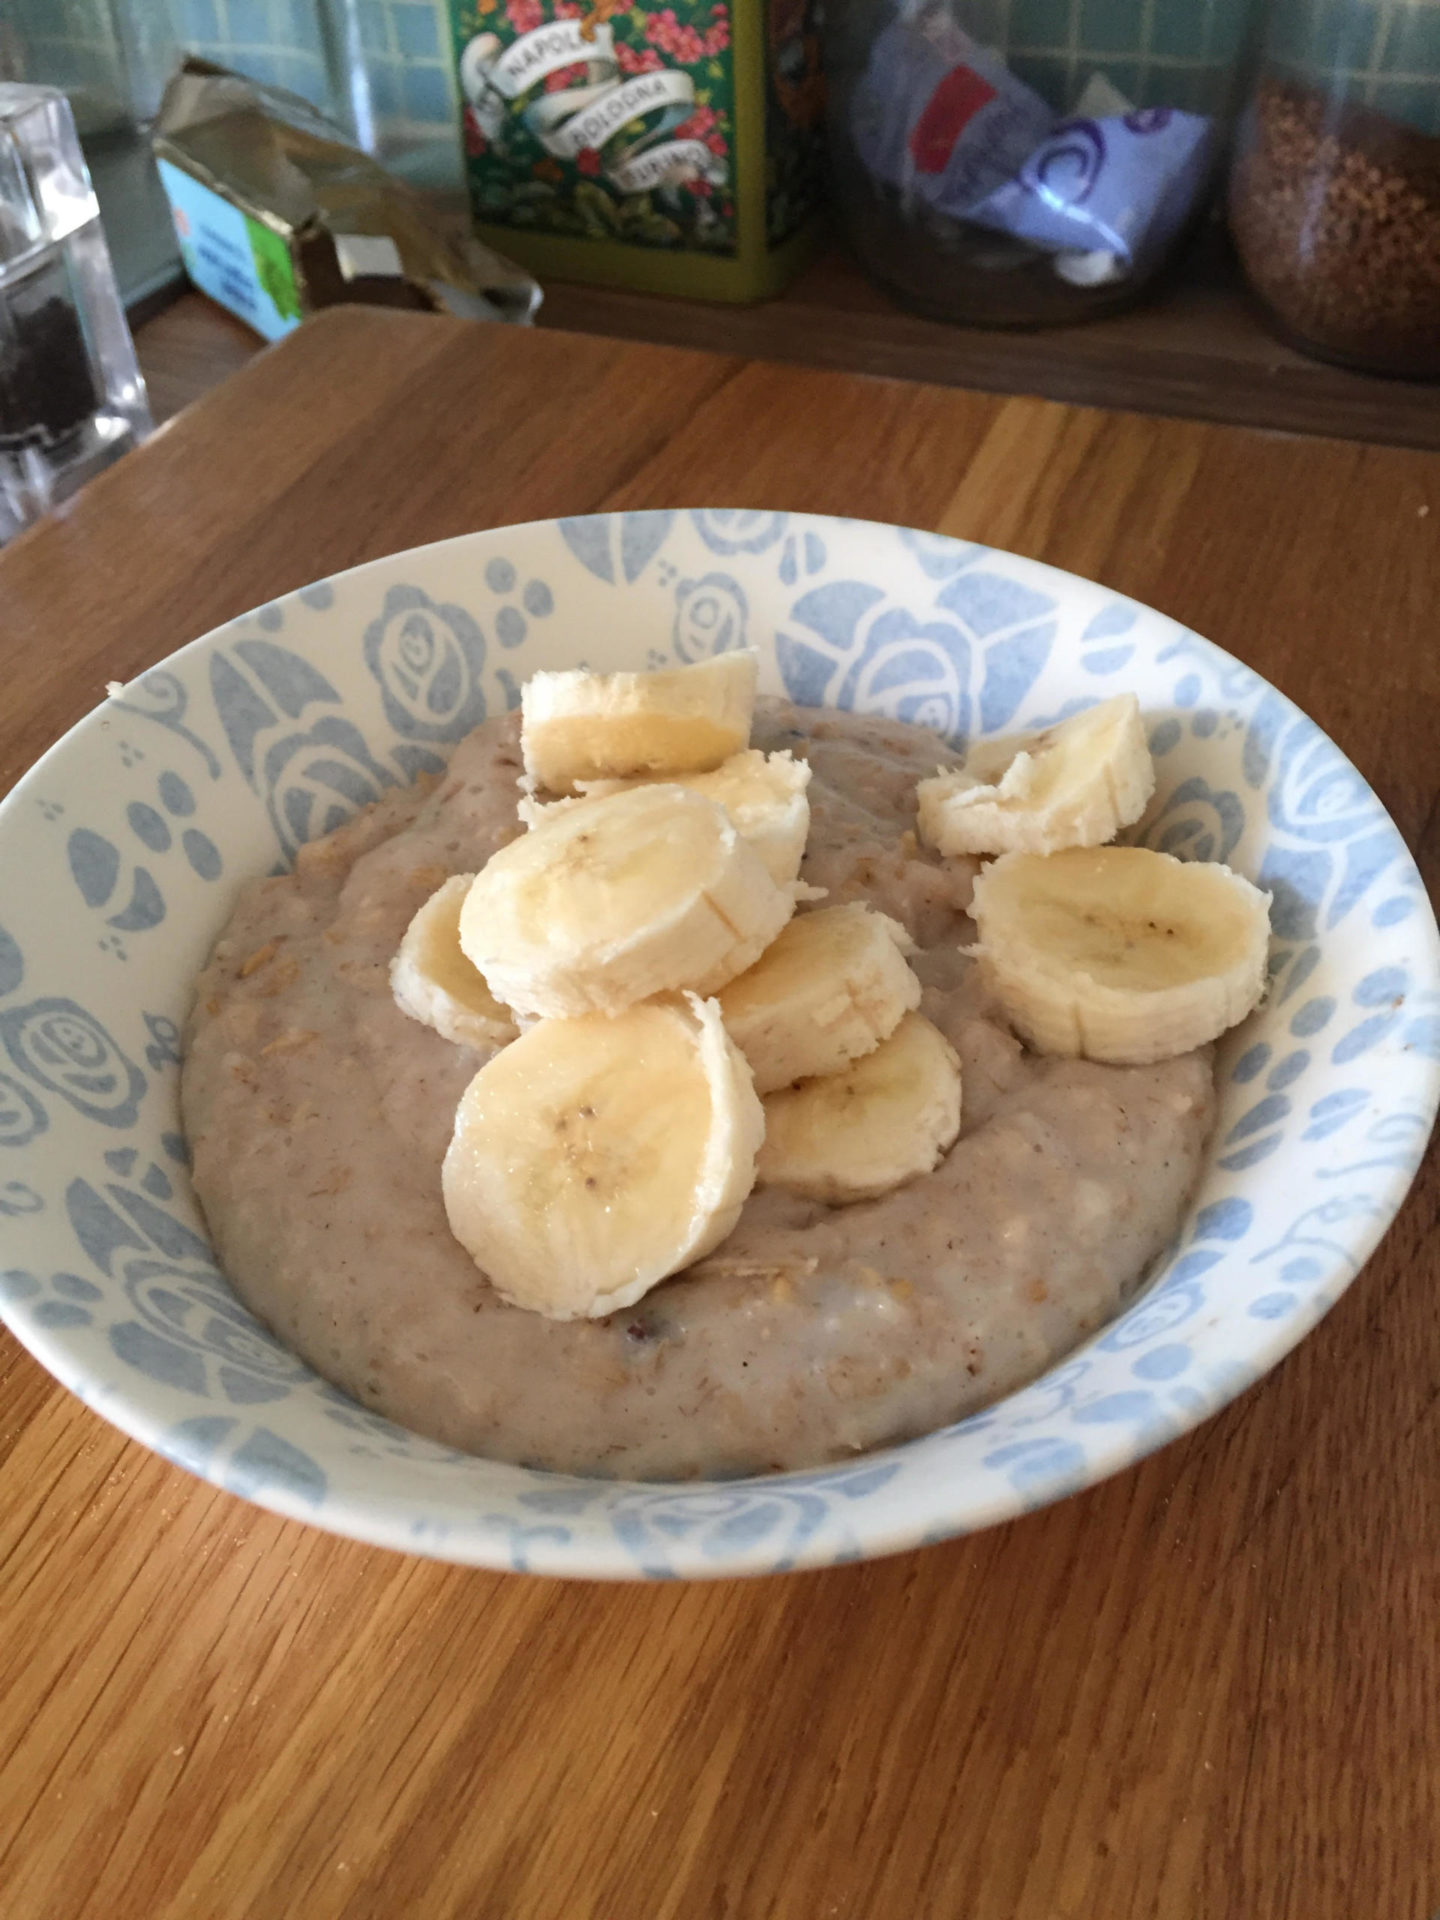 WHAT PORRIDGE ACTUALLY LOOKS LIKE